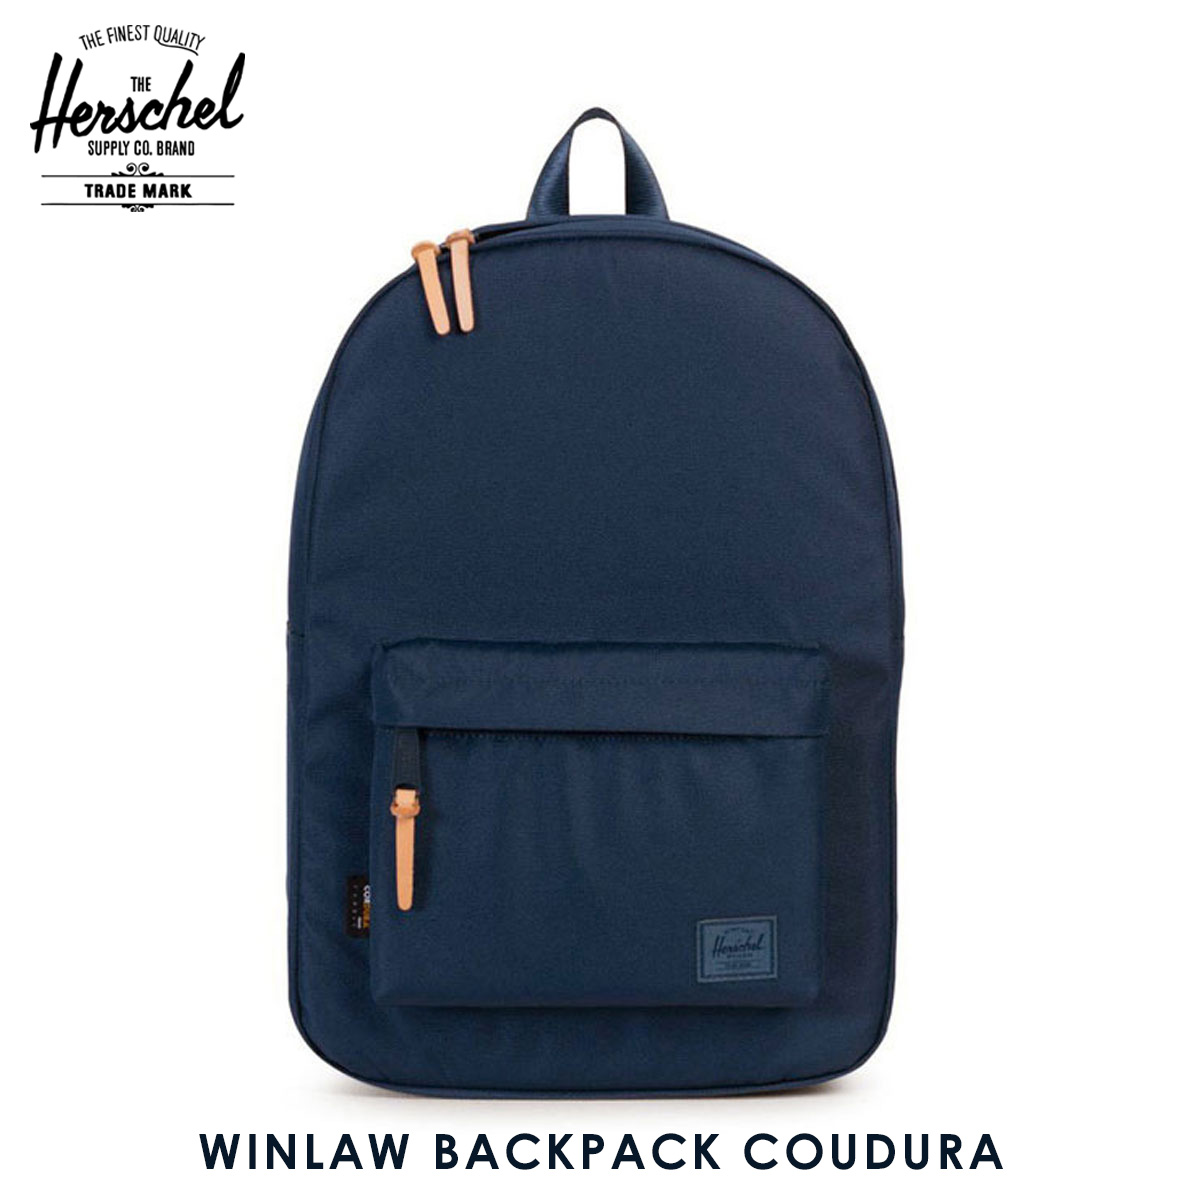 c038c25d968 Herschel supply Herschel Supply regular sale shop bag rucksack WINLAW  BACKPACK COUDURA 10230-01217-OS NAVY